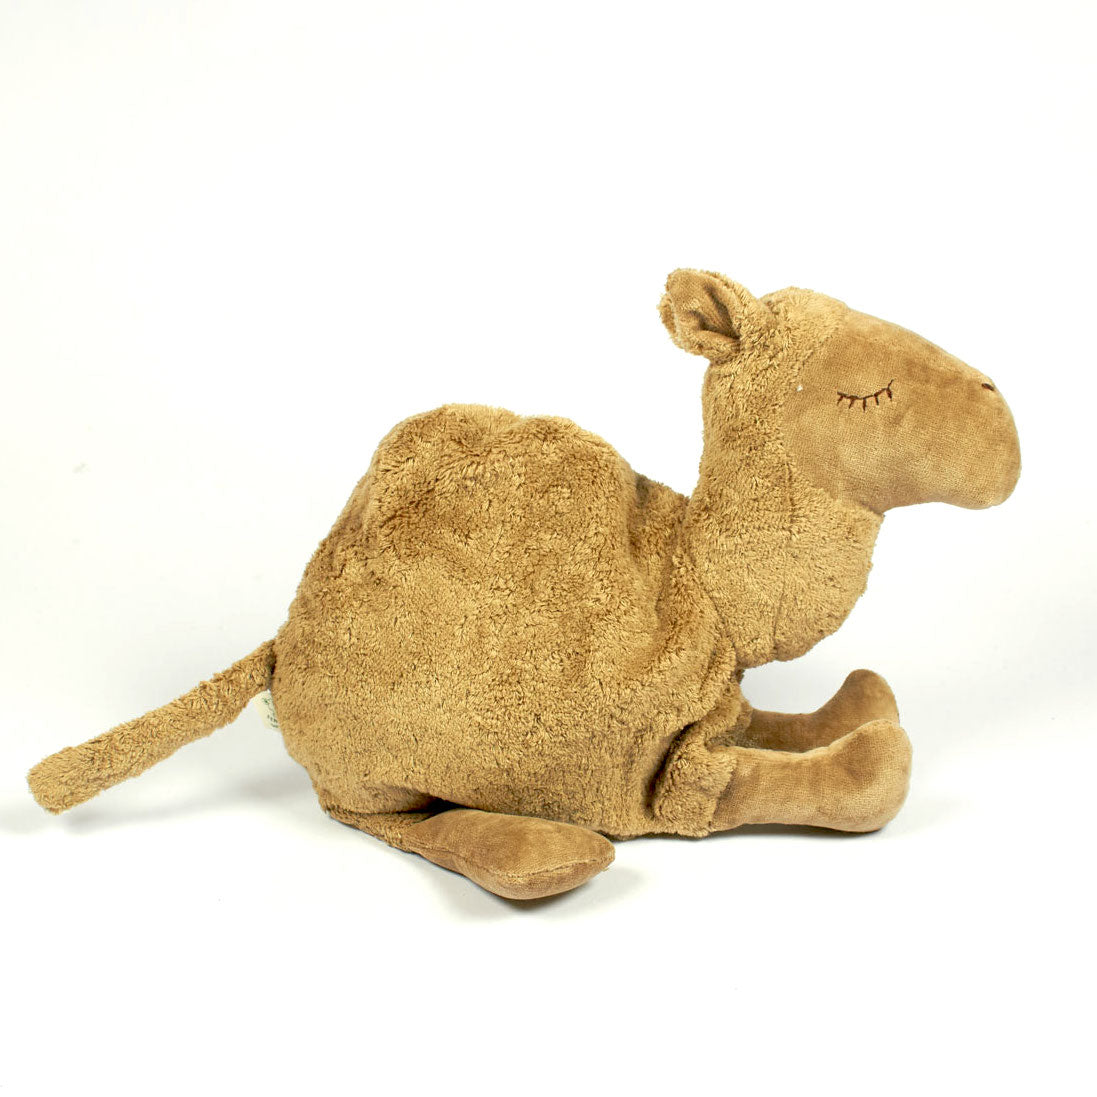 Senger organic cotton cuddly camel toy and pillow with removable heating pad